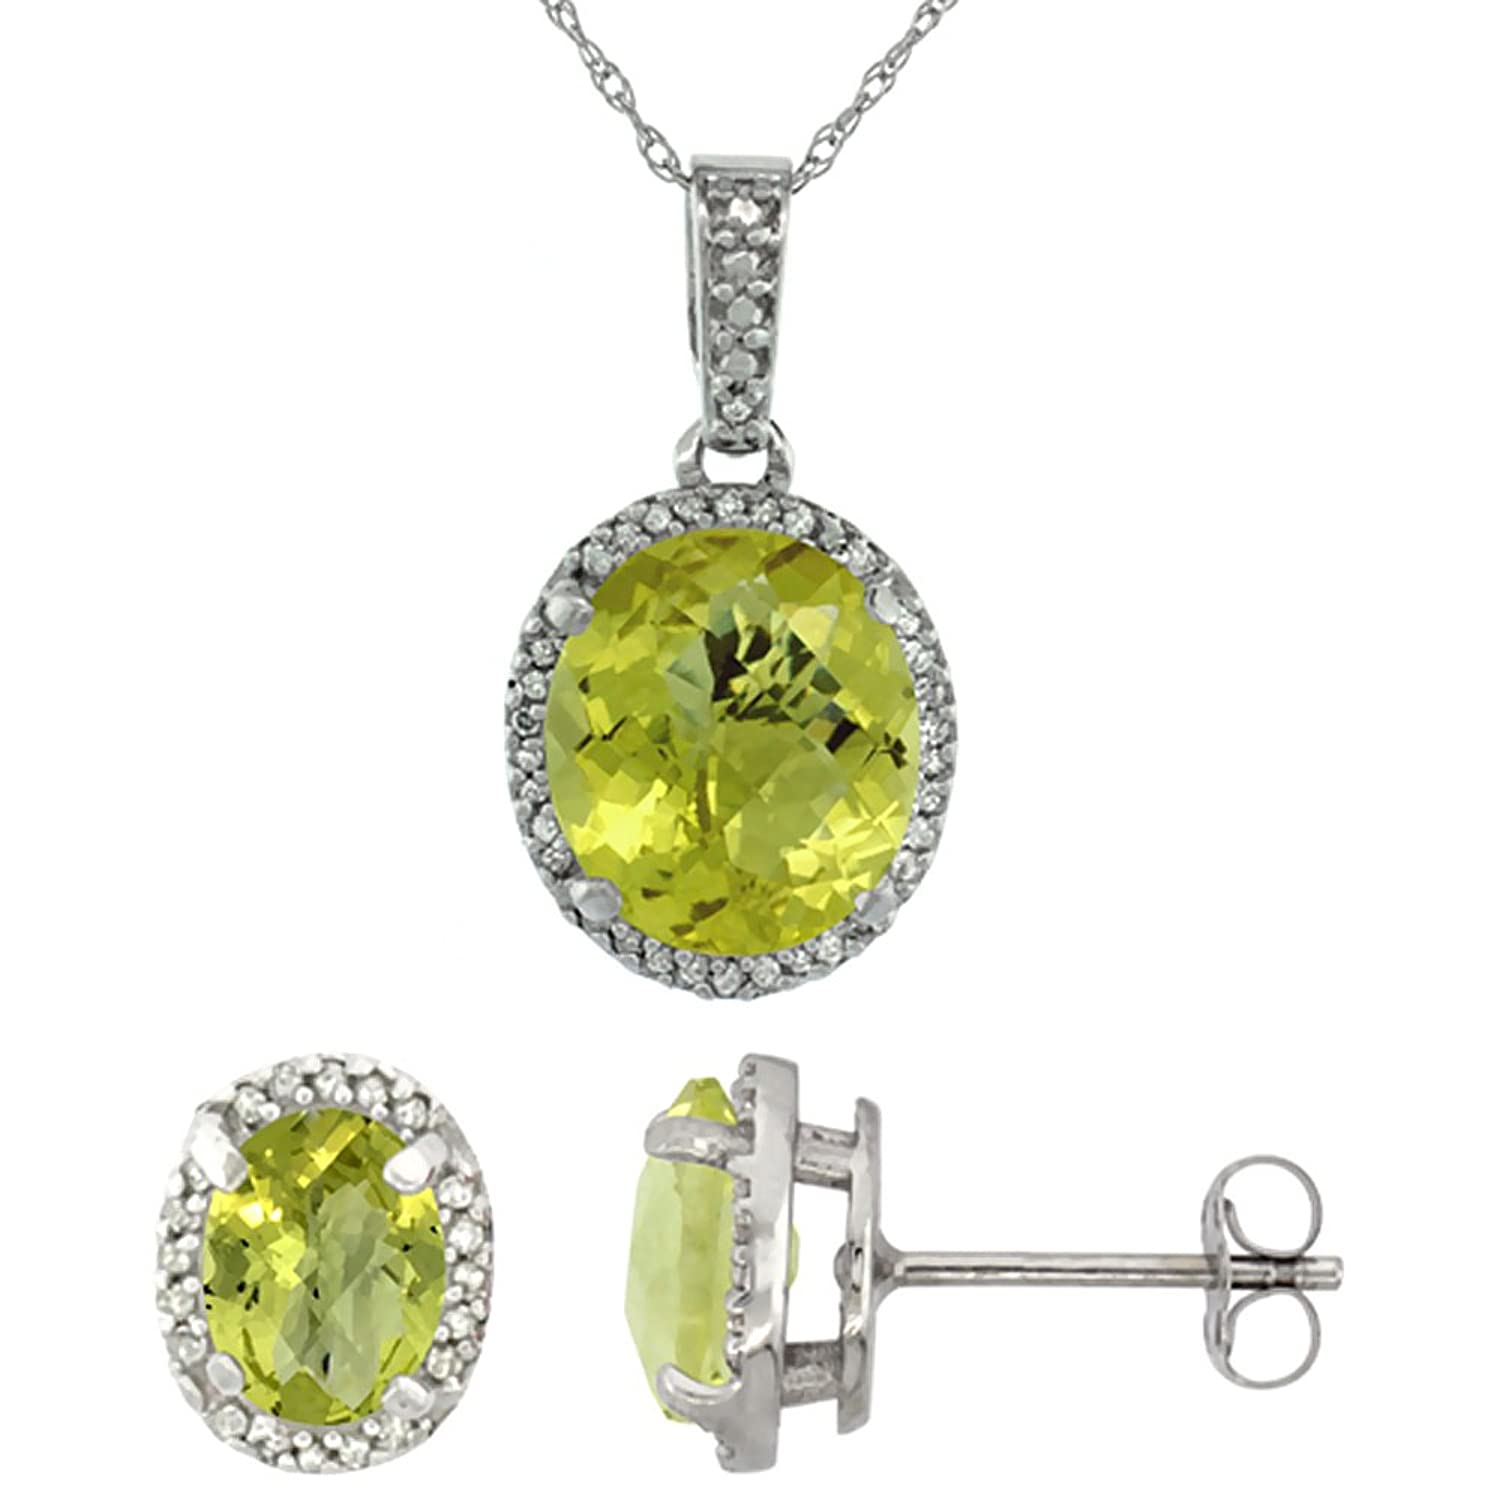 10K White Gold Diamond Natural Lemon Quartz Oval Earrings & Pendant Set